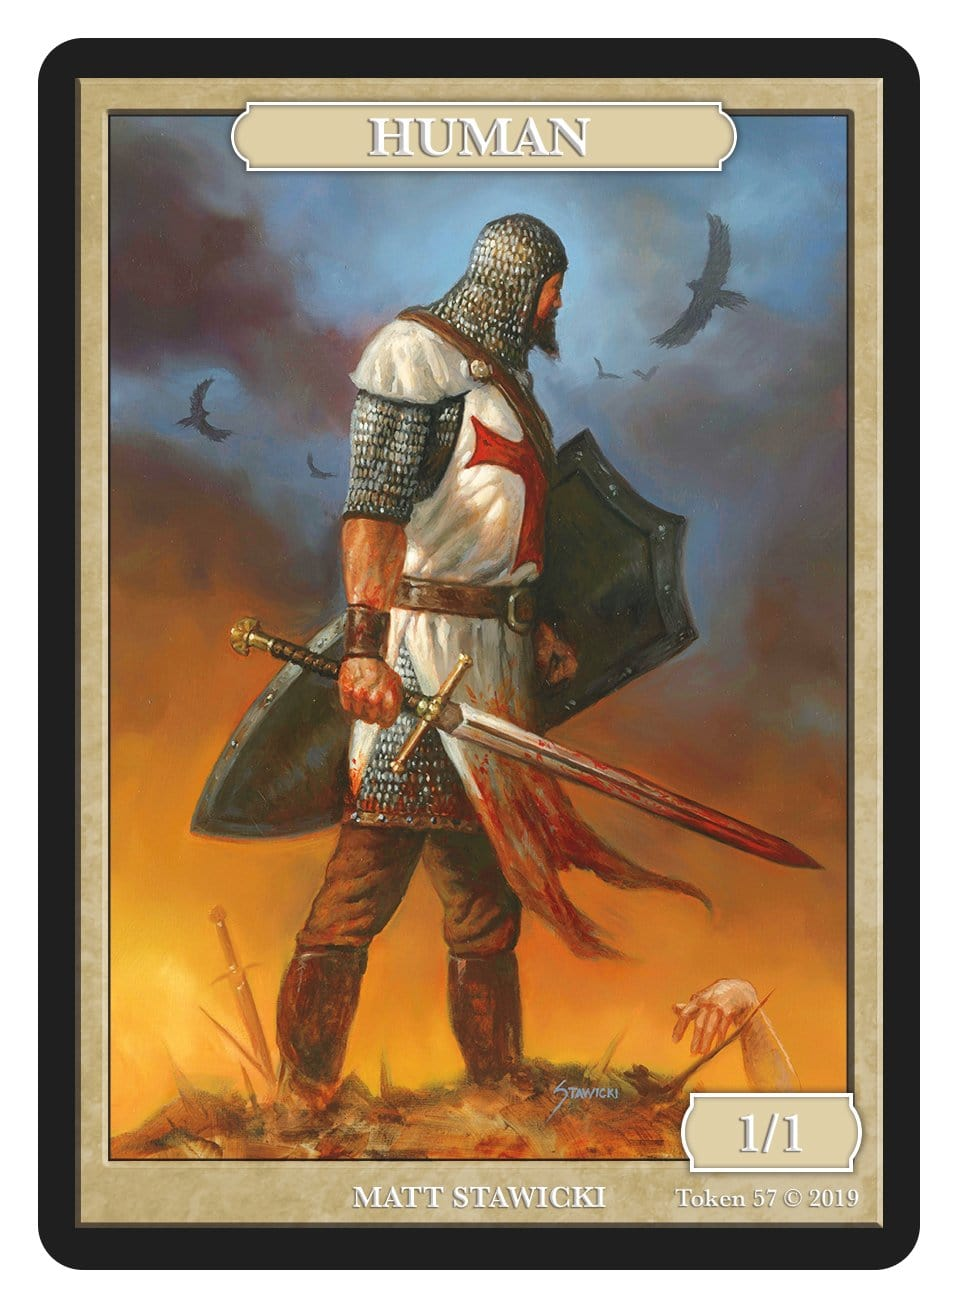 Human Token (1/1) by Matt Stawicki - Token - Original Magic Art - Accessories for Magic the Gathering and other card games